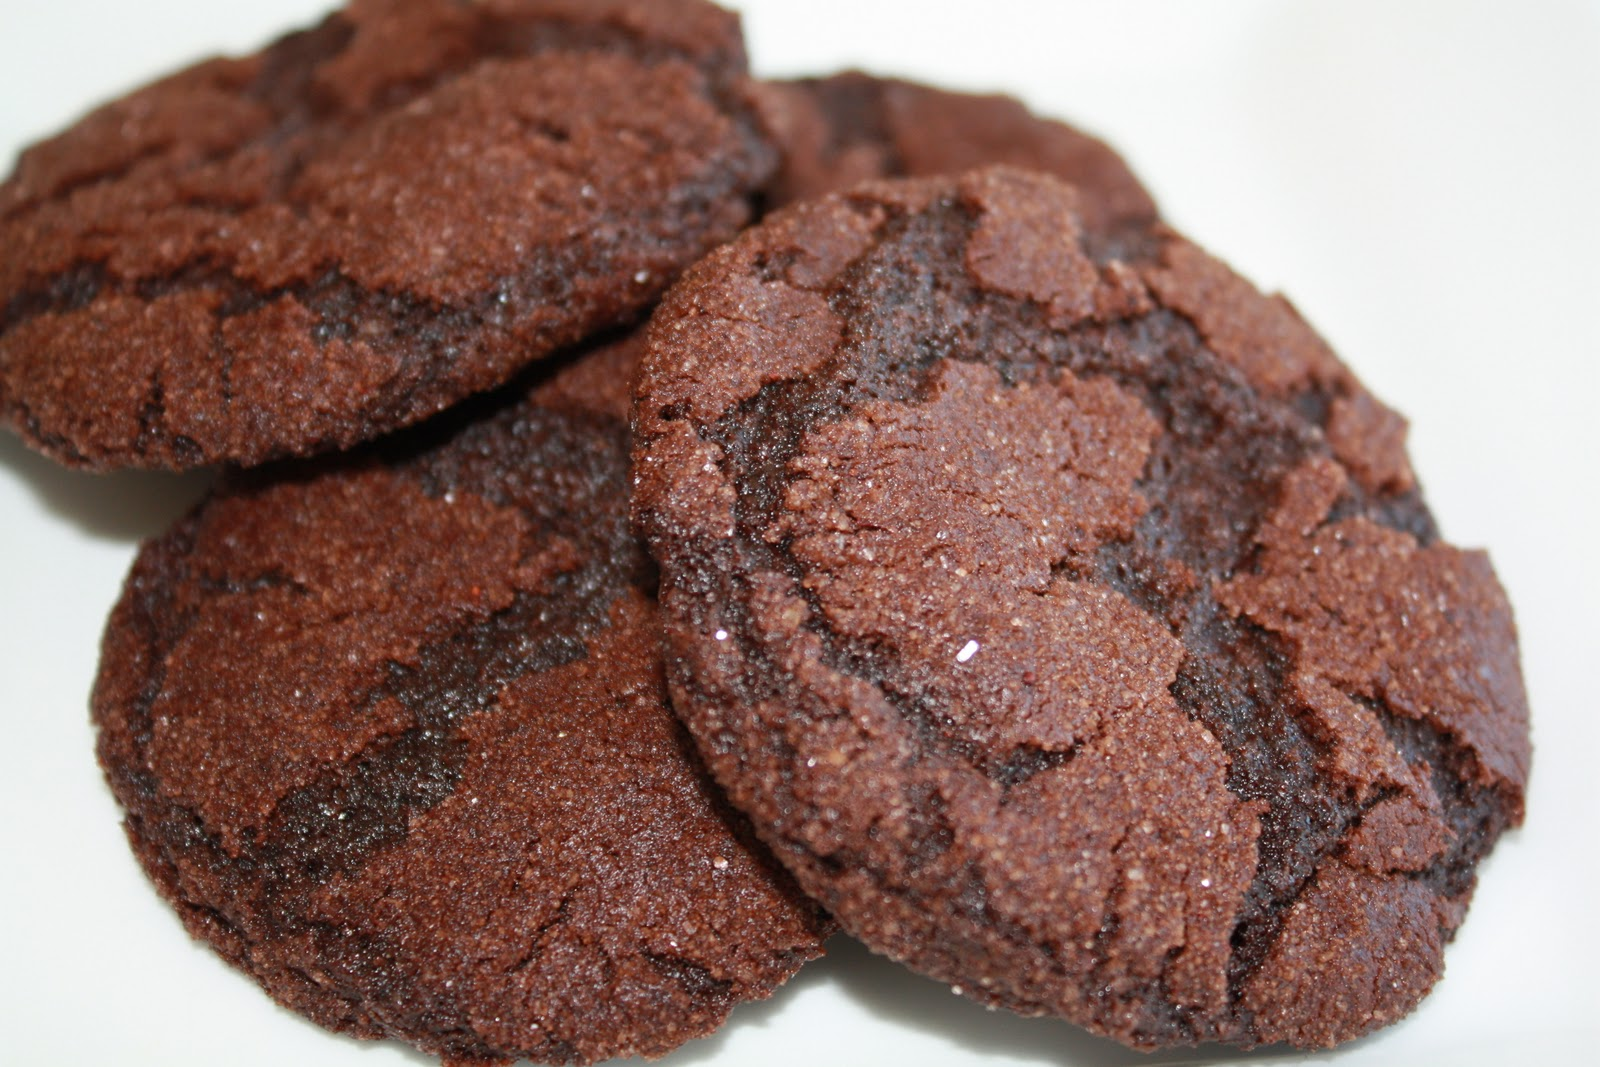 Chocolate Cookie Images - Reverse Search